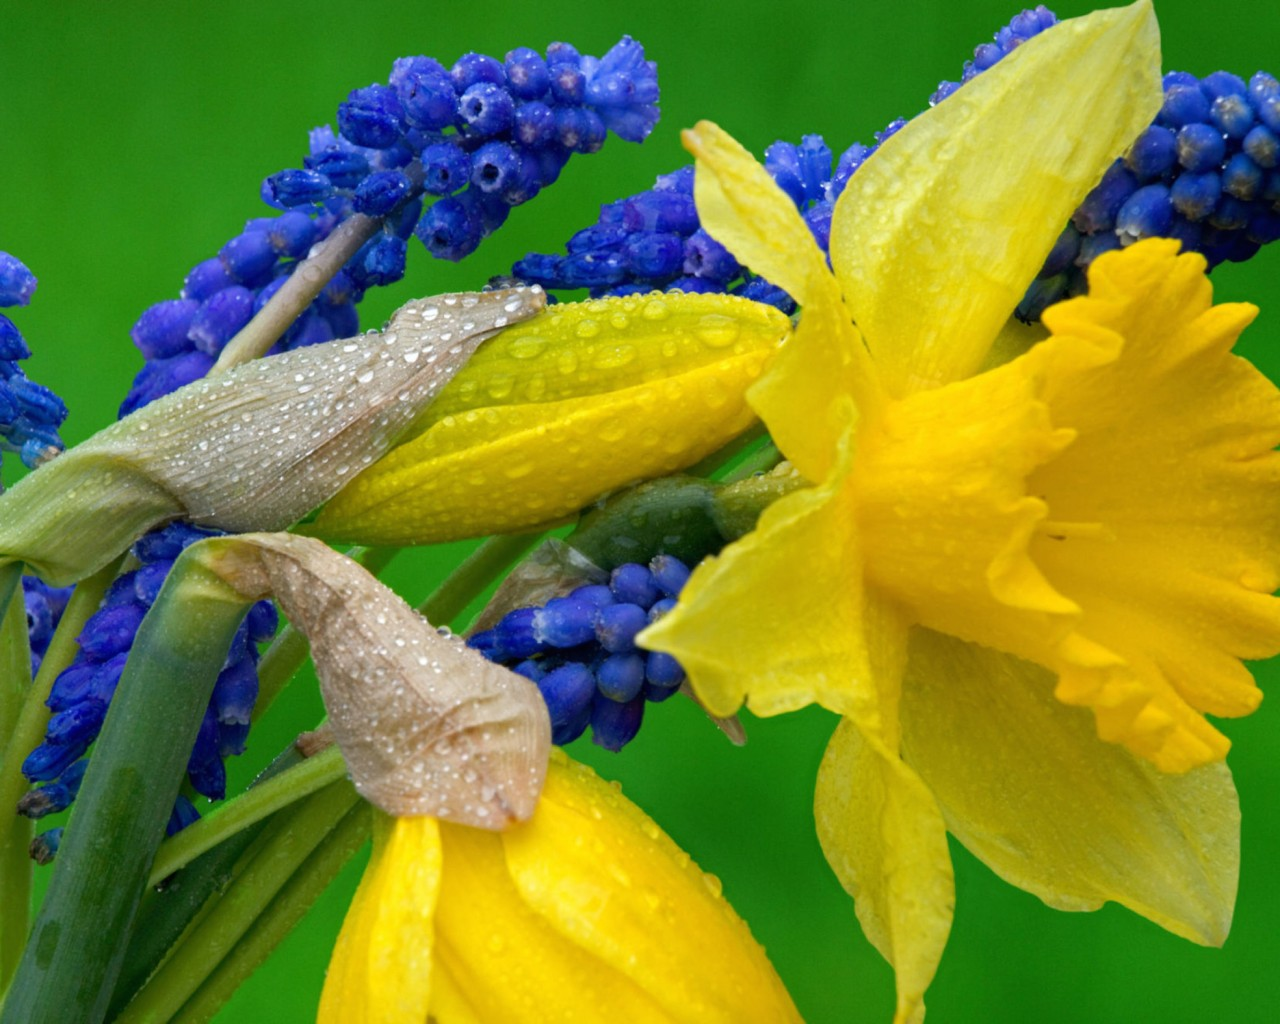 daffodils and grape hyacinth wallpaper - free downloads